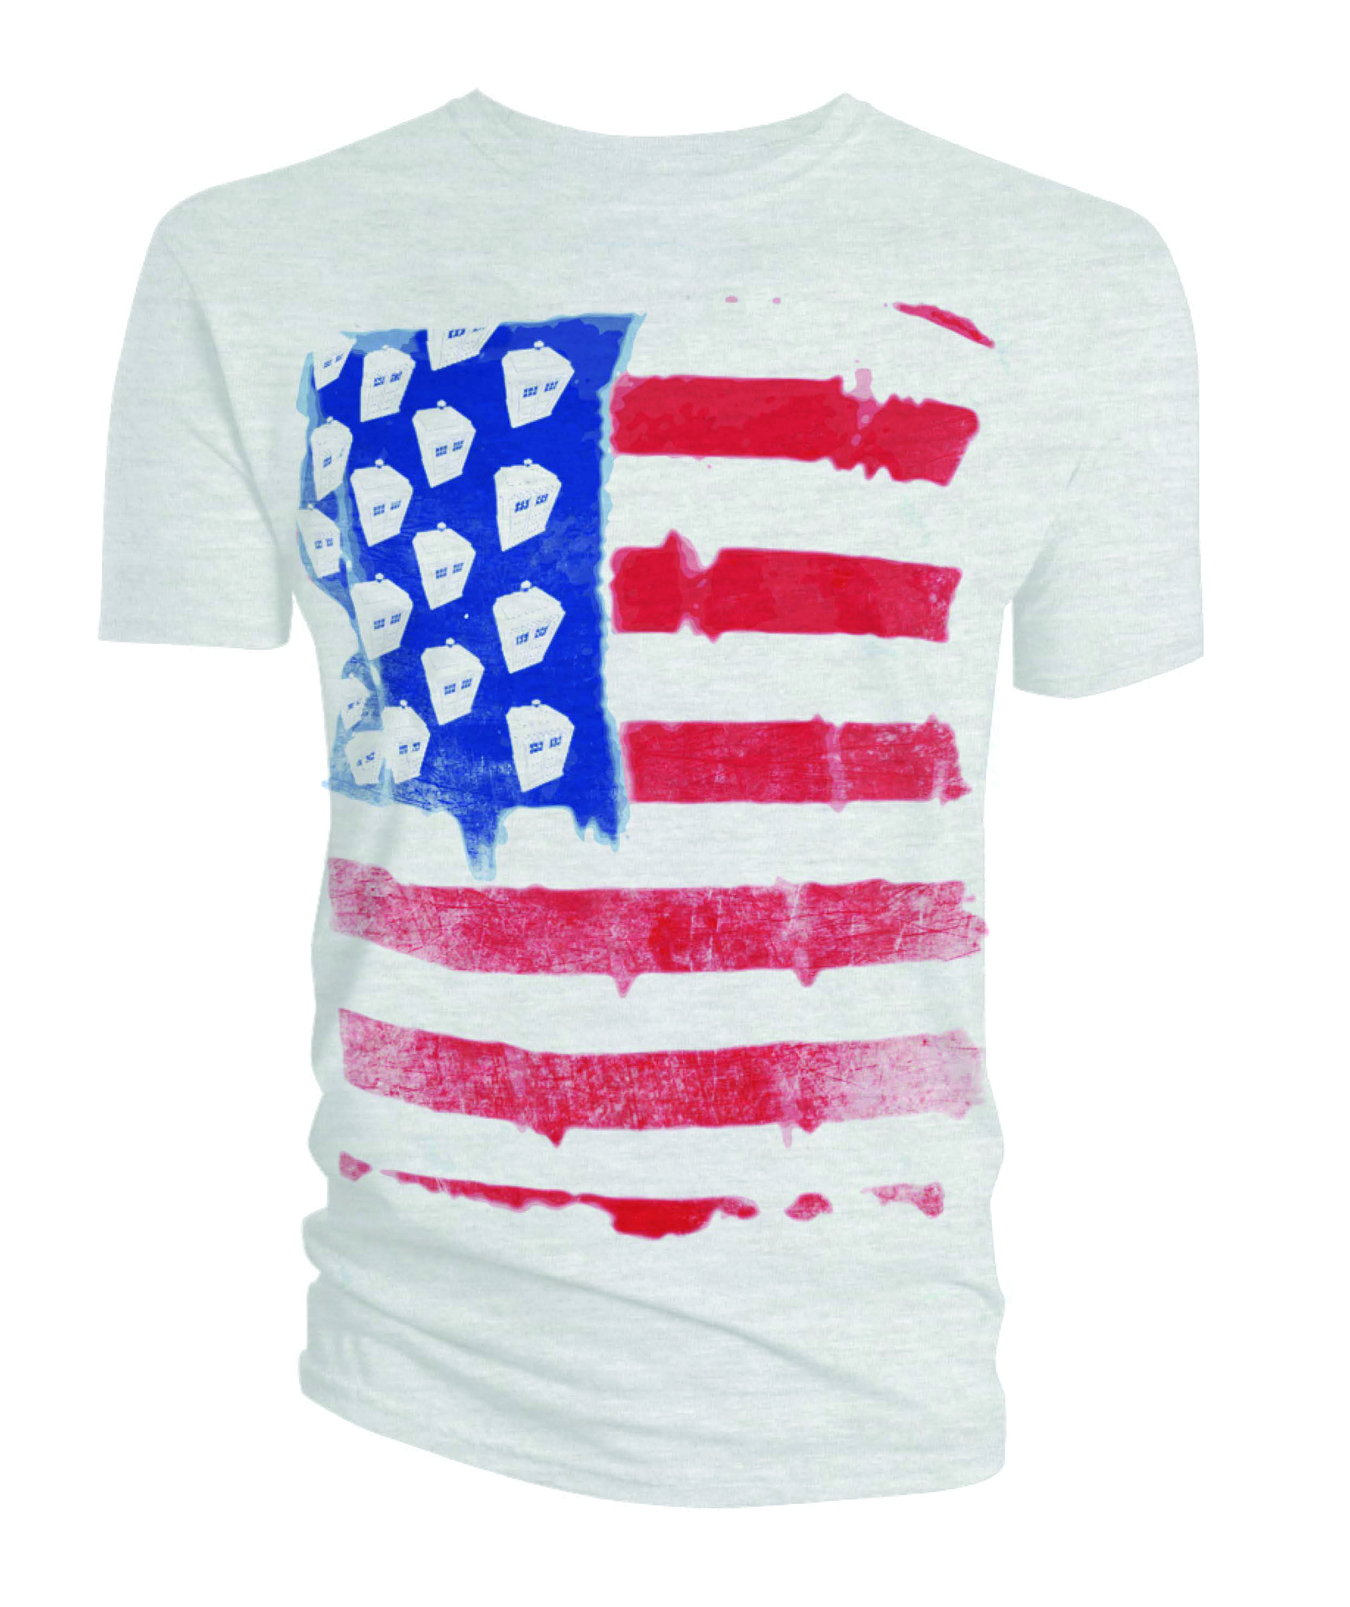 DOCTOR WHO STARS AND STRIPES T/S XL